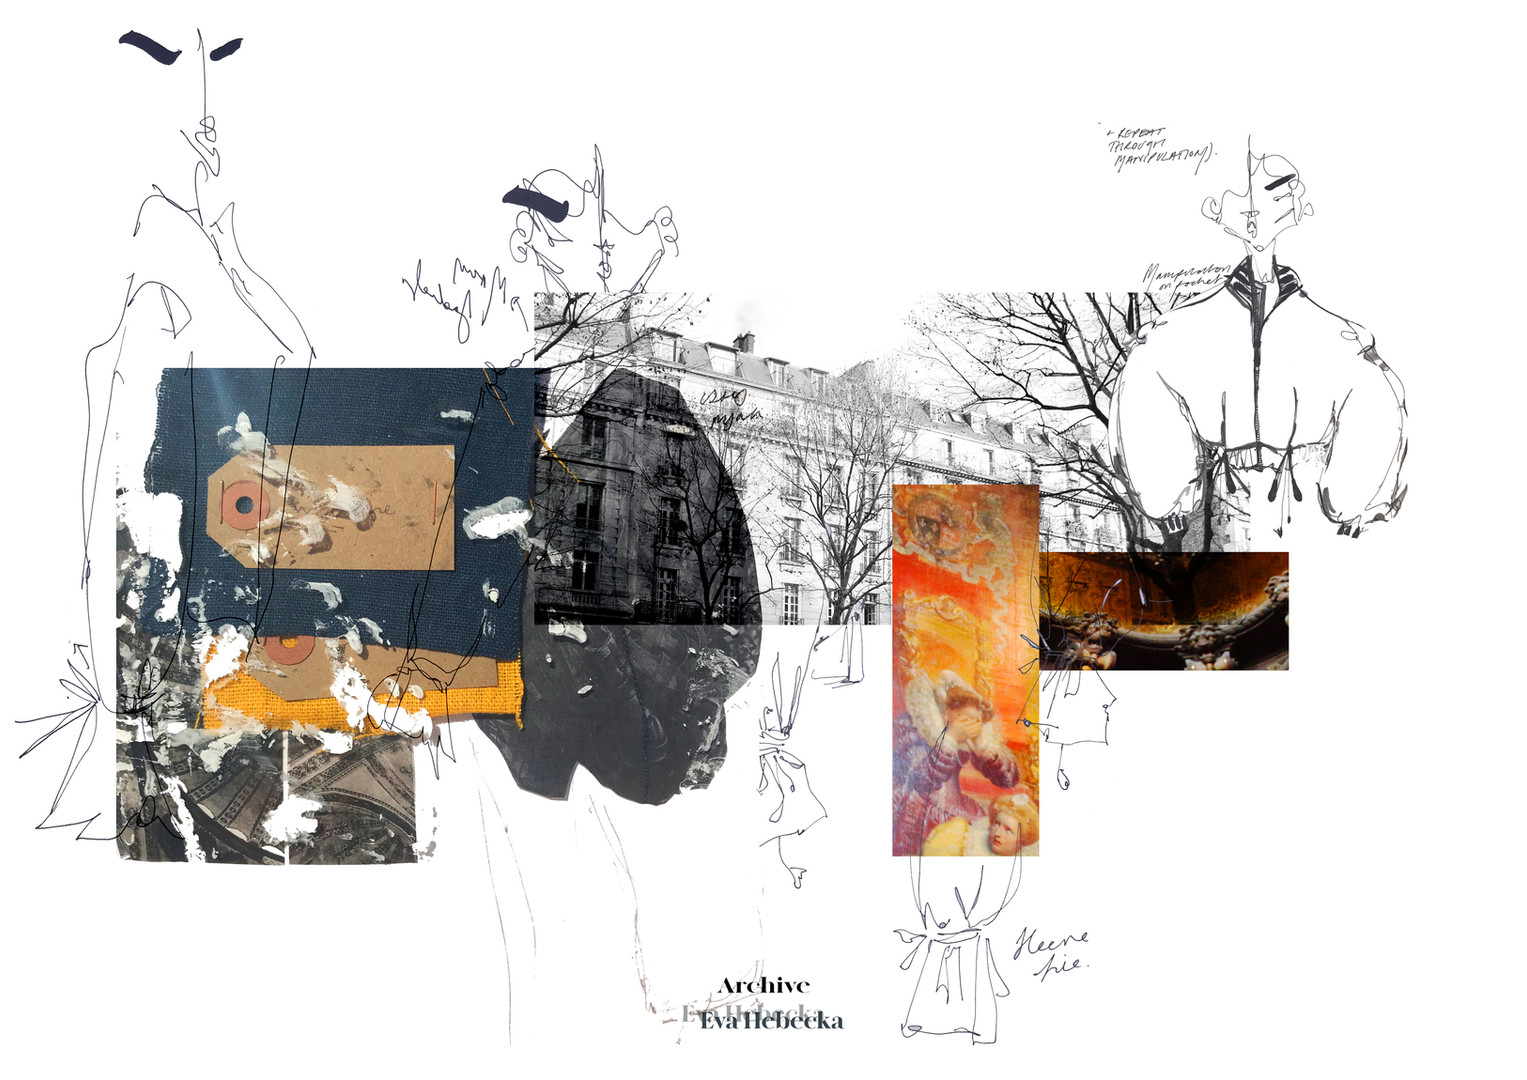 Archive & Abstract Project